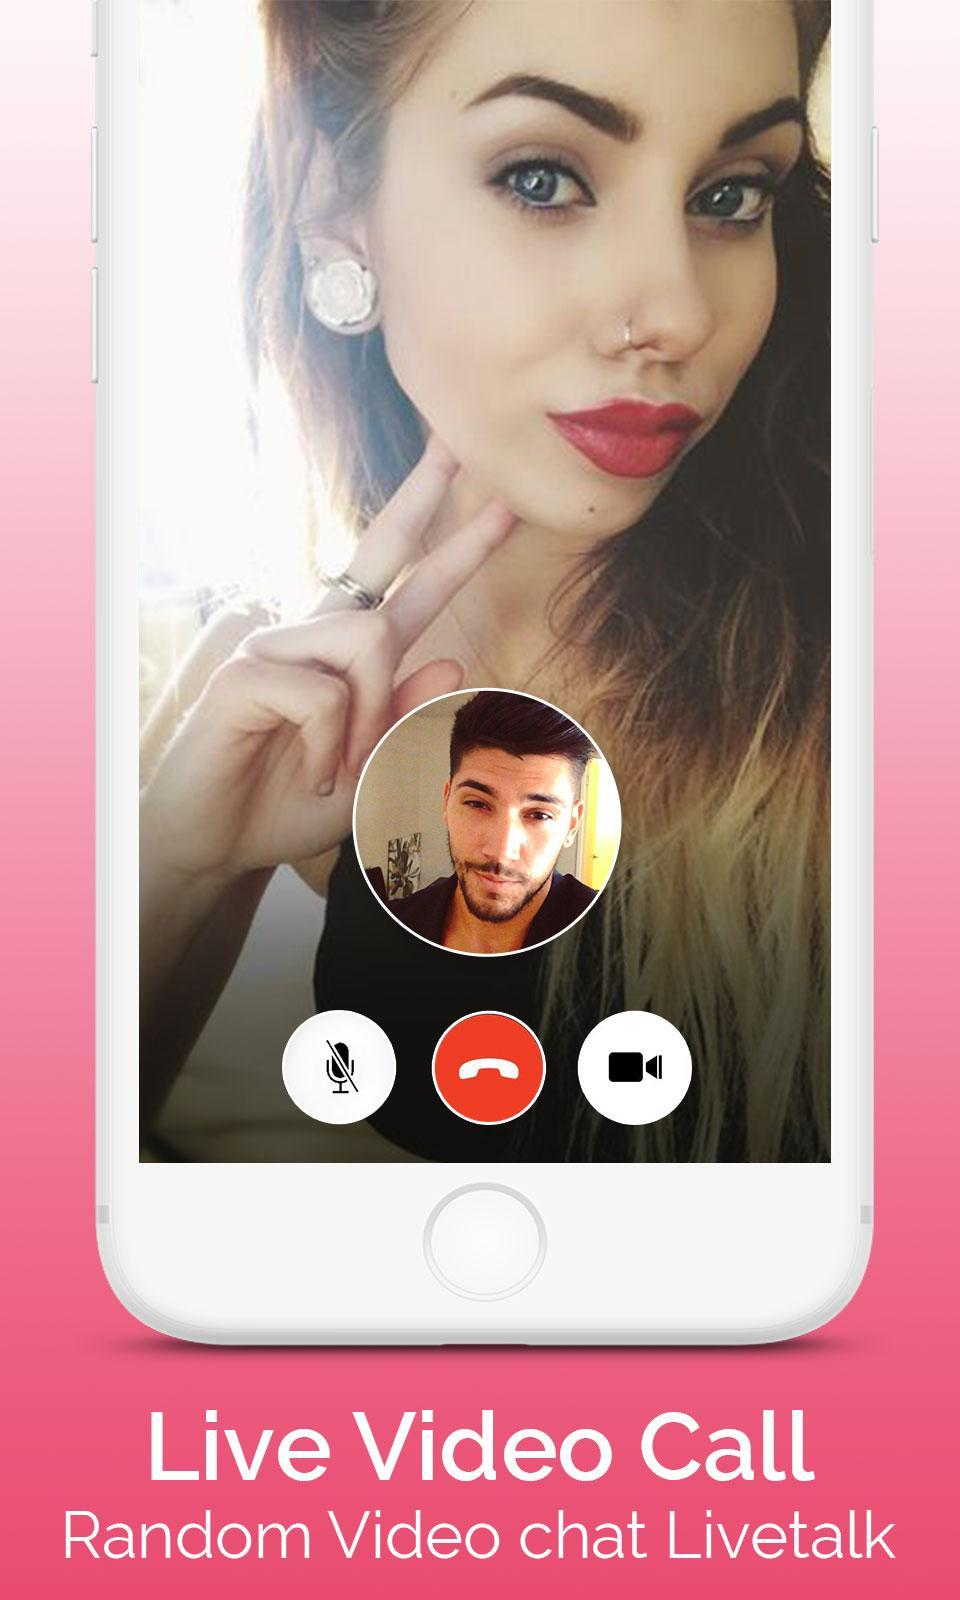 Video call chat random onCamChat